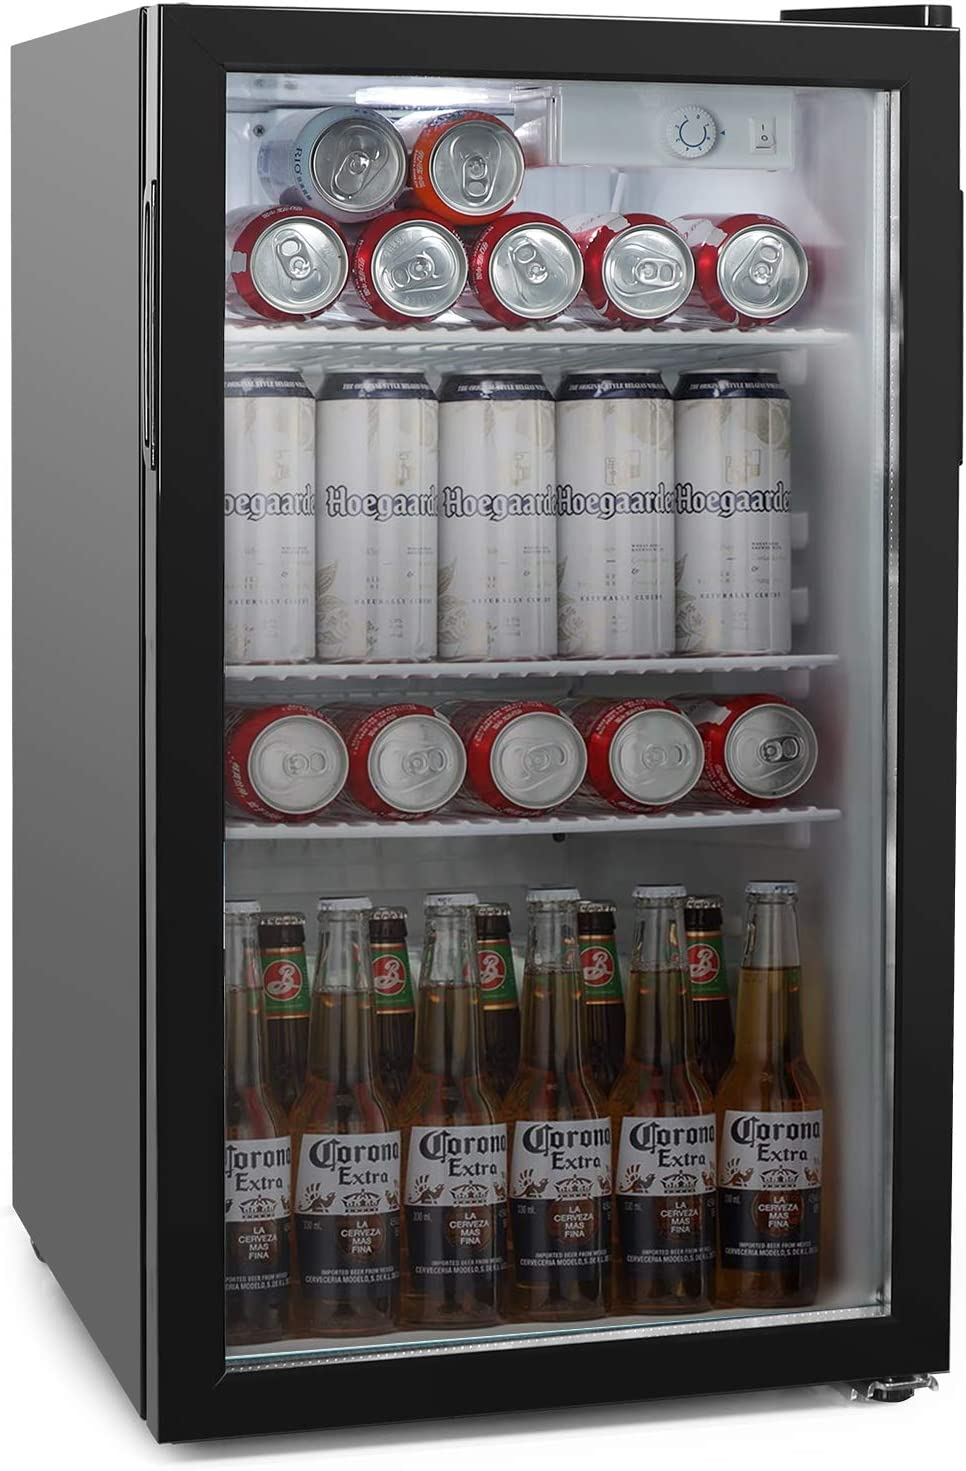 COOLLIFE Beverage Refrigerator Cooler -100Can Mini Fridge with Reversible Glass Door for Beer Soda or Wine-3.2cu.ft. Drink Center Dispenser Perfect for Office/Basements/Home Bar (3.2 cubic feet)